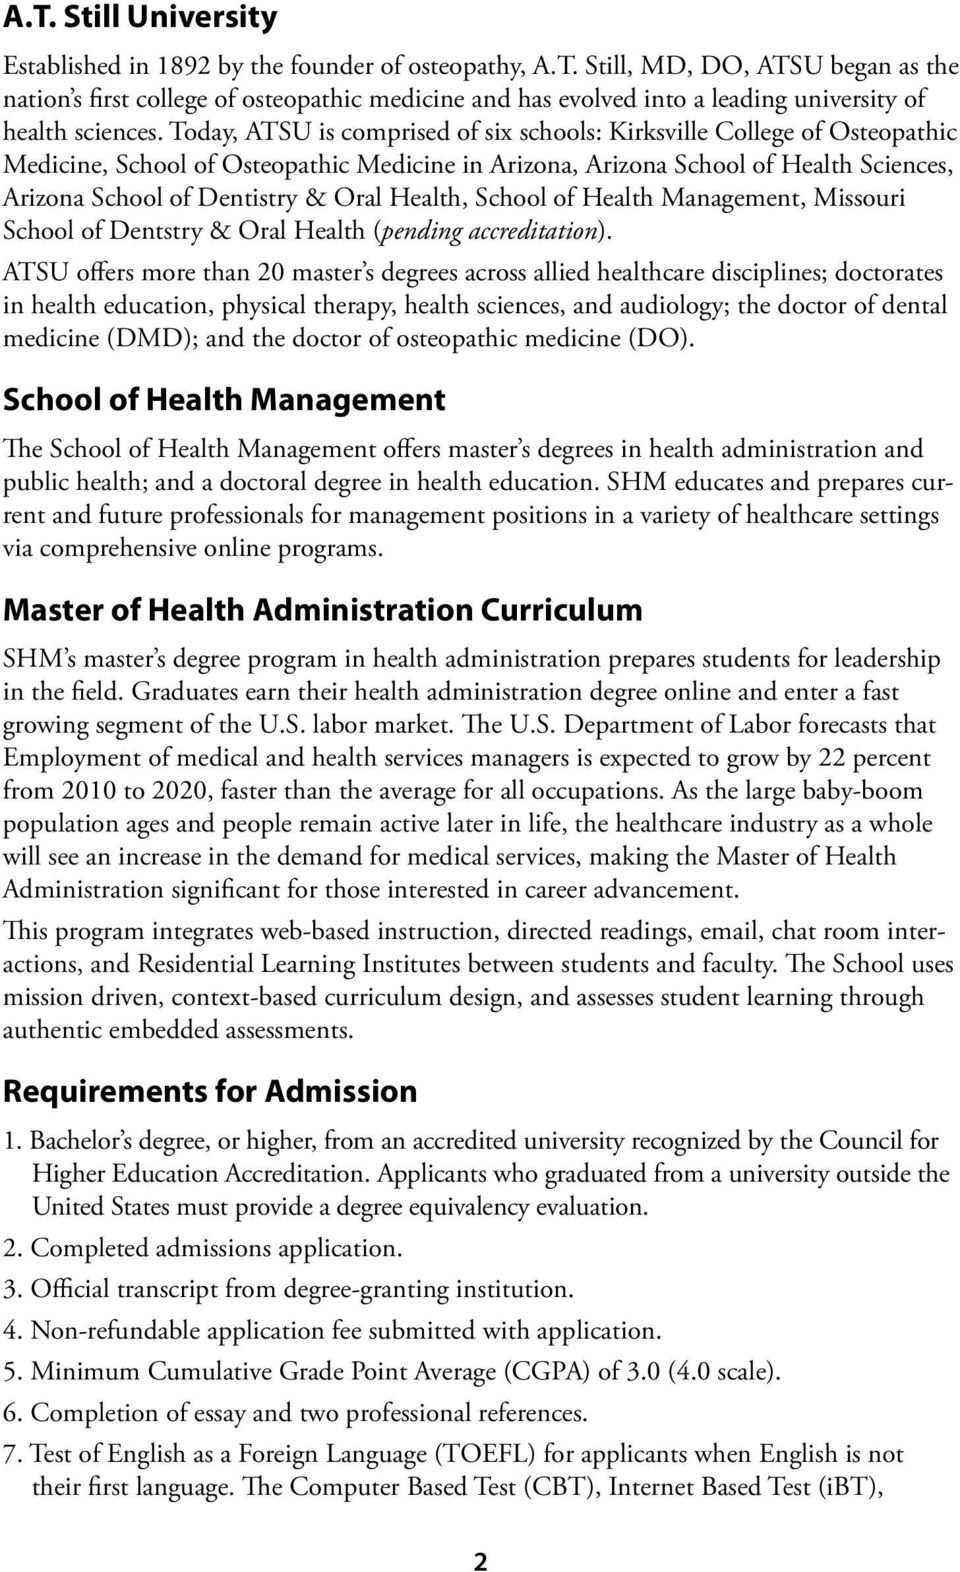 Health, School of Health Management, Missouri School of Dentstry & Oral Health (pending accreditation).